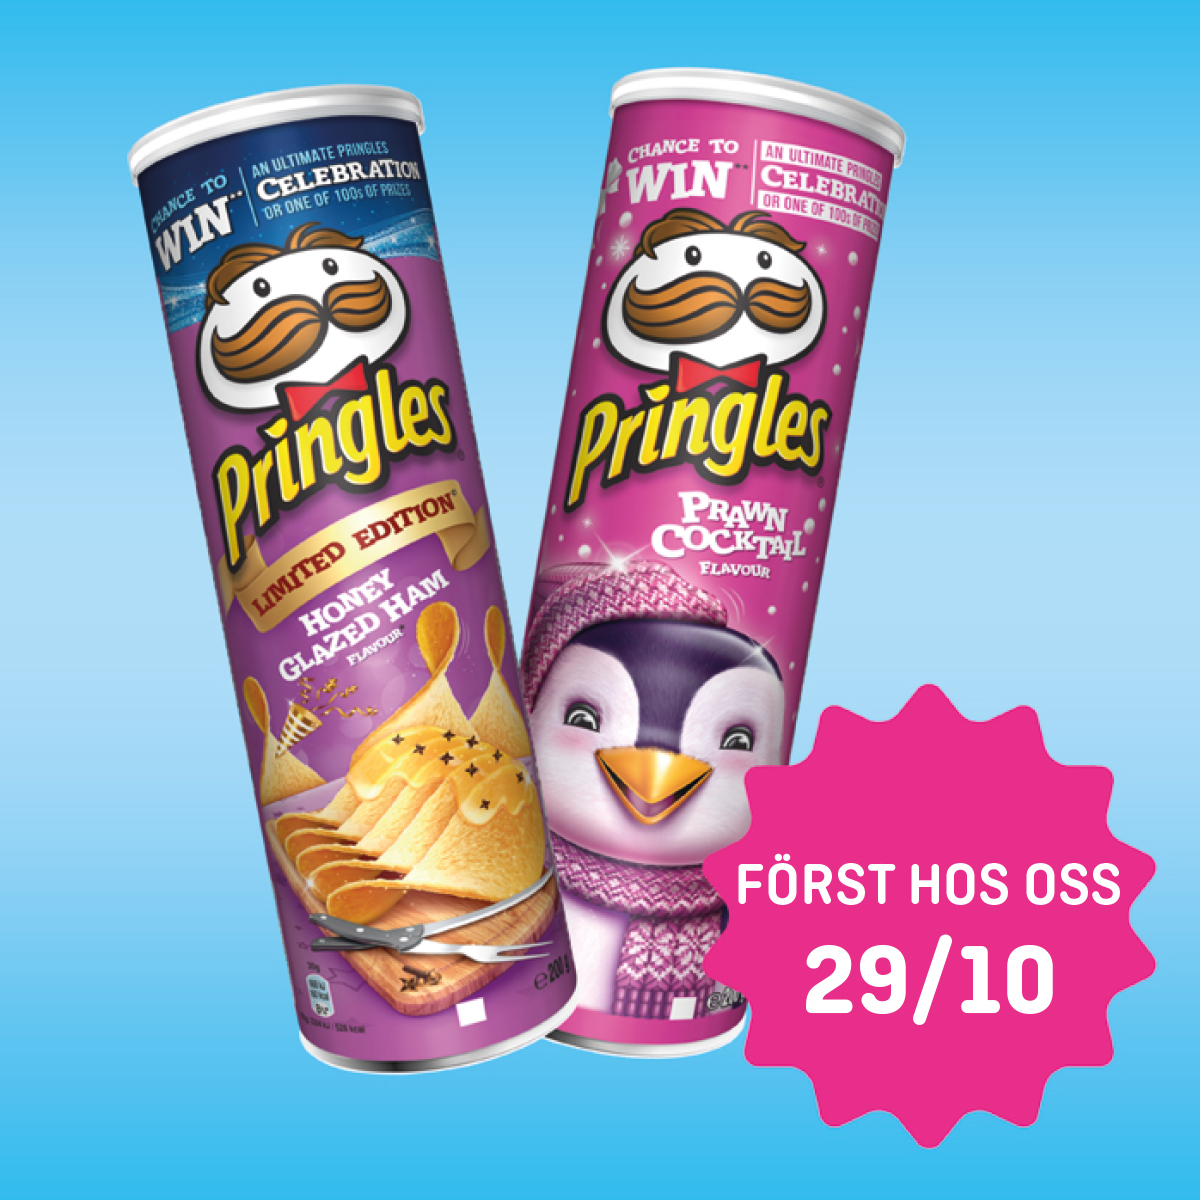 Pringles Honey Glazed Ham & Prawn Coctail 29/10